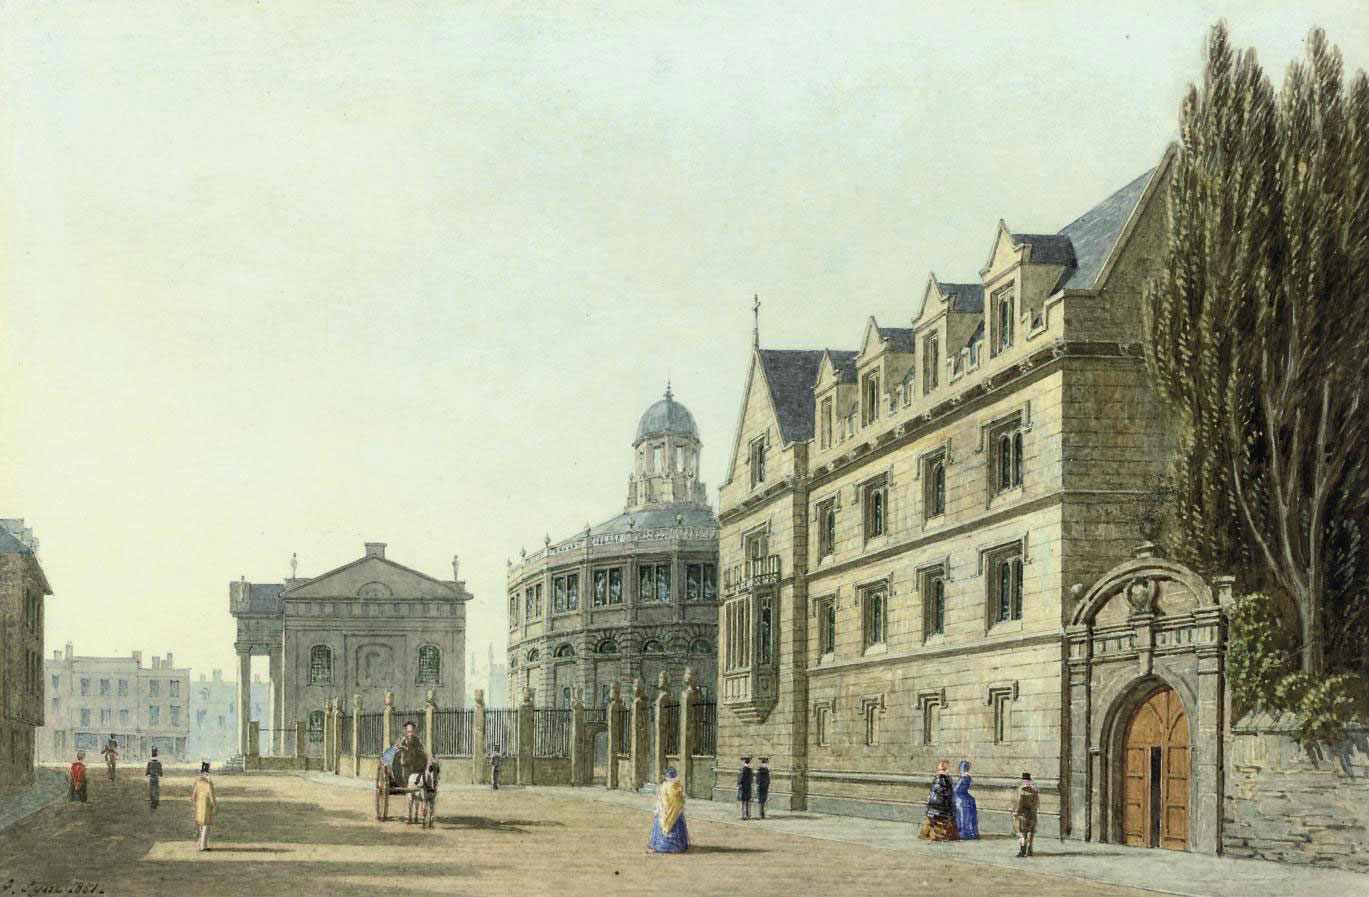 View of the Clarendon building, Sheldonian Theatre and Exeter College, Broad Street, Oxford